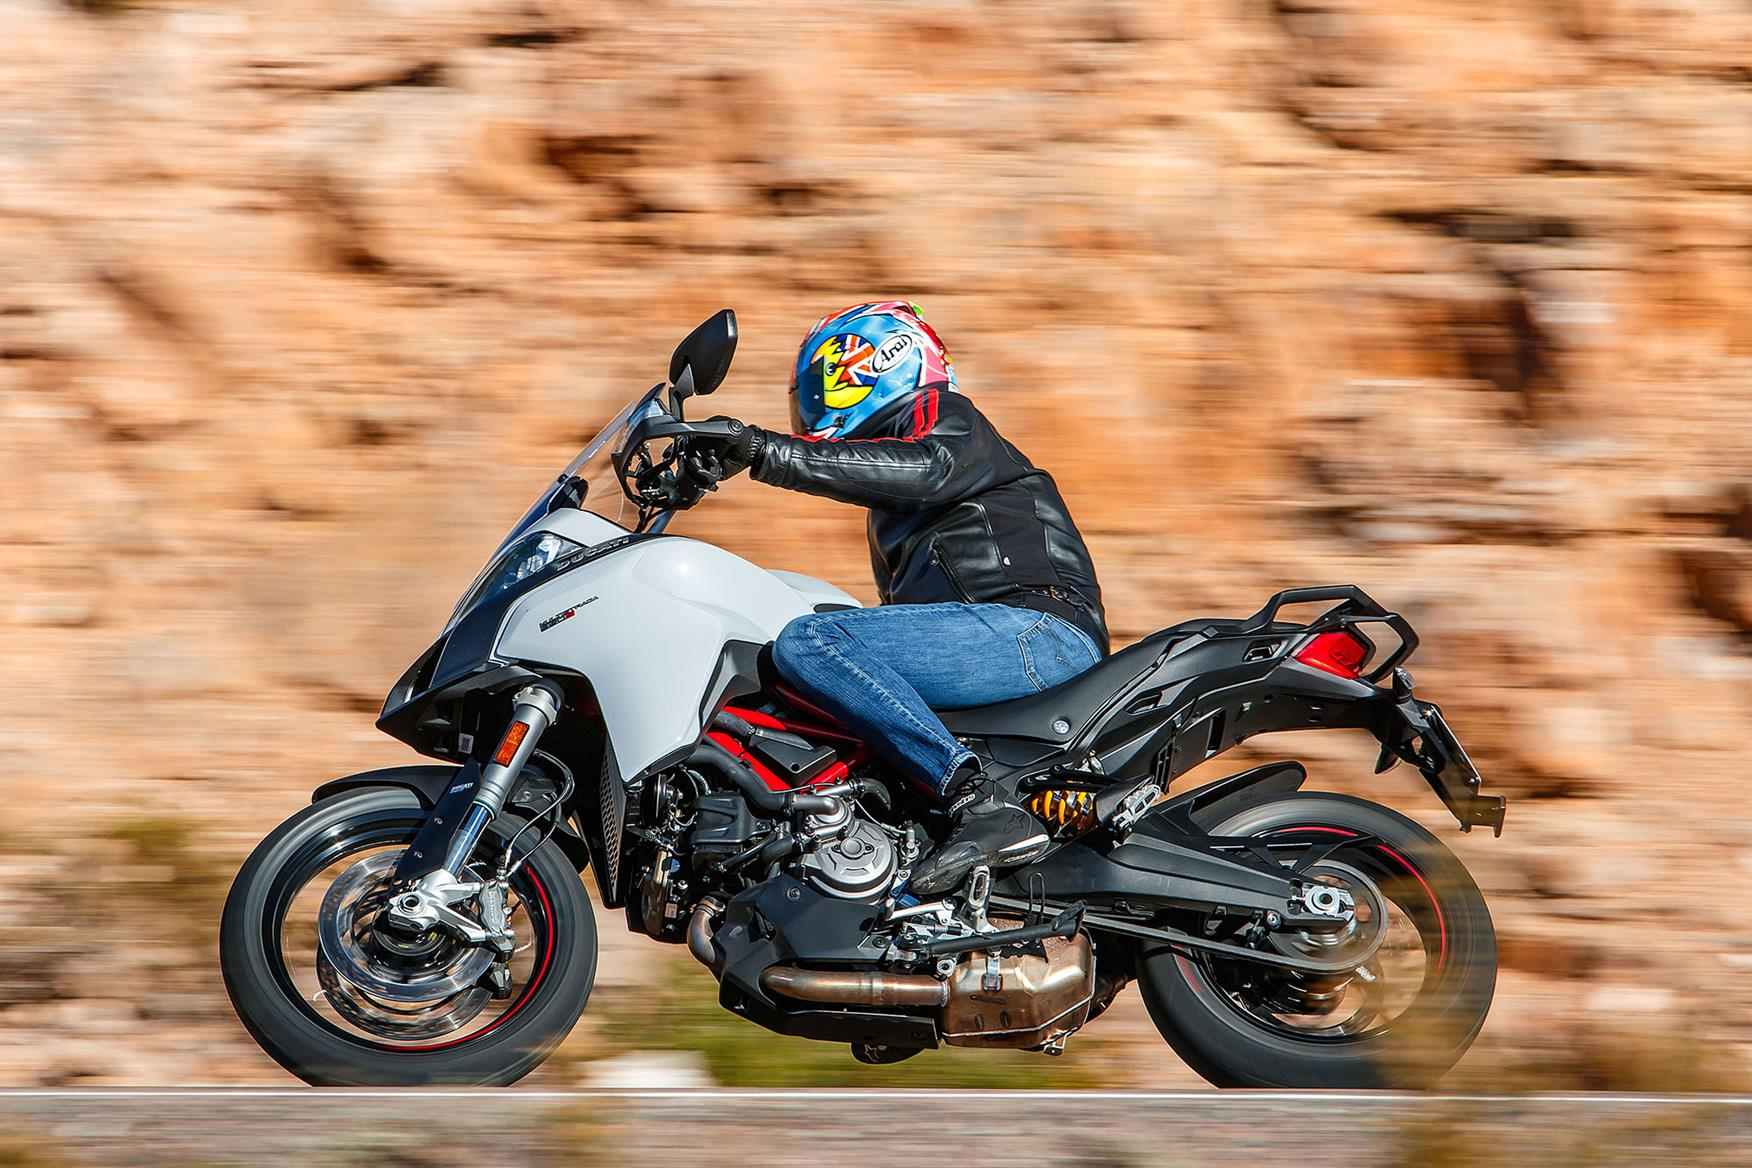 Ducati Multistrada 950 S left side